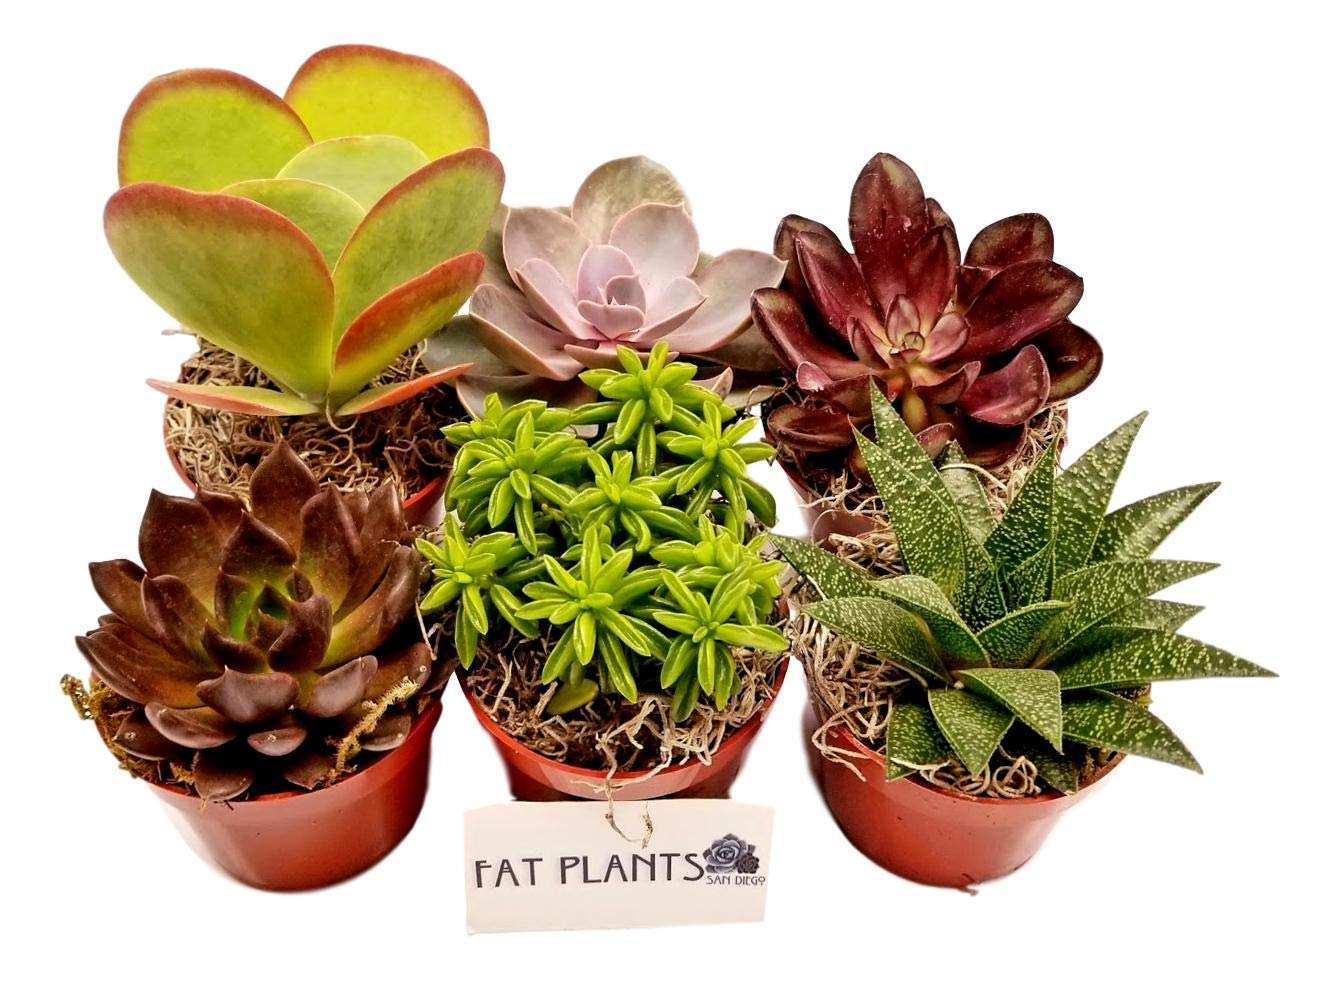 Fat Plants San Diego Live Succulent Plant Variety Collection by Fat Plants San Diego